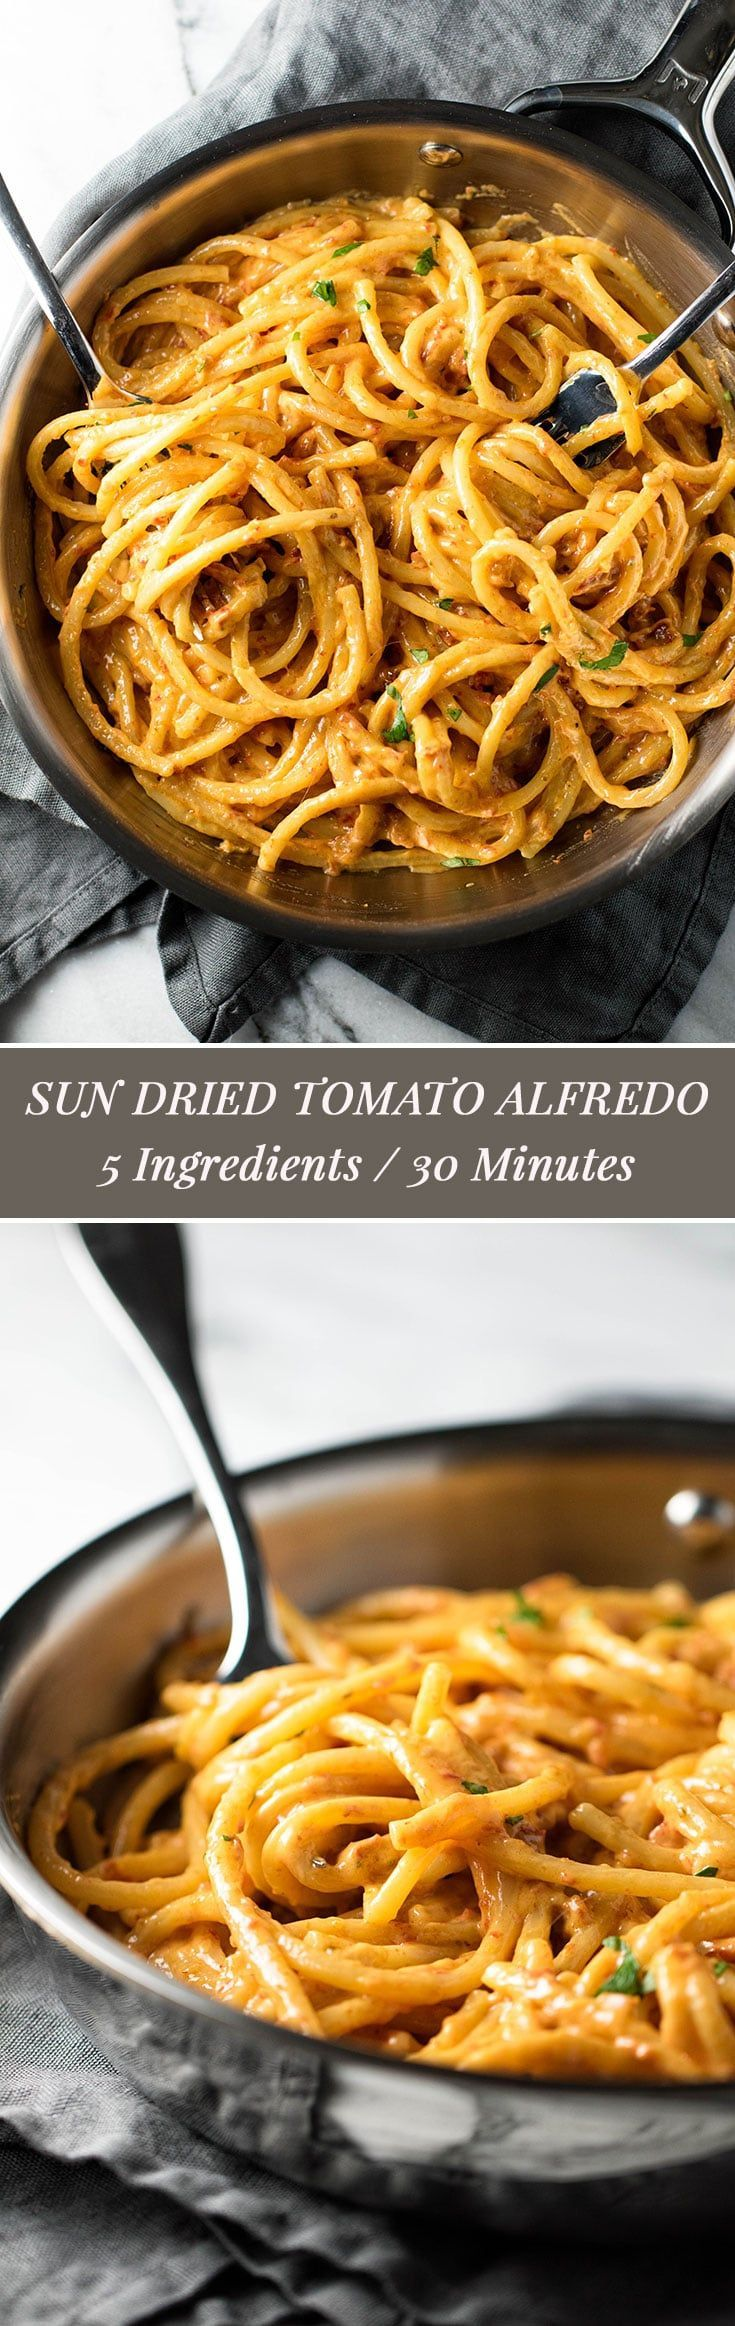 This sun dried tomato alfredo takes just 20 minutes and requires only 5 ingredients   girlgonegourmet.com via @april7116